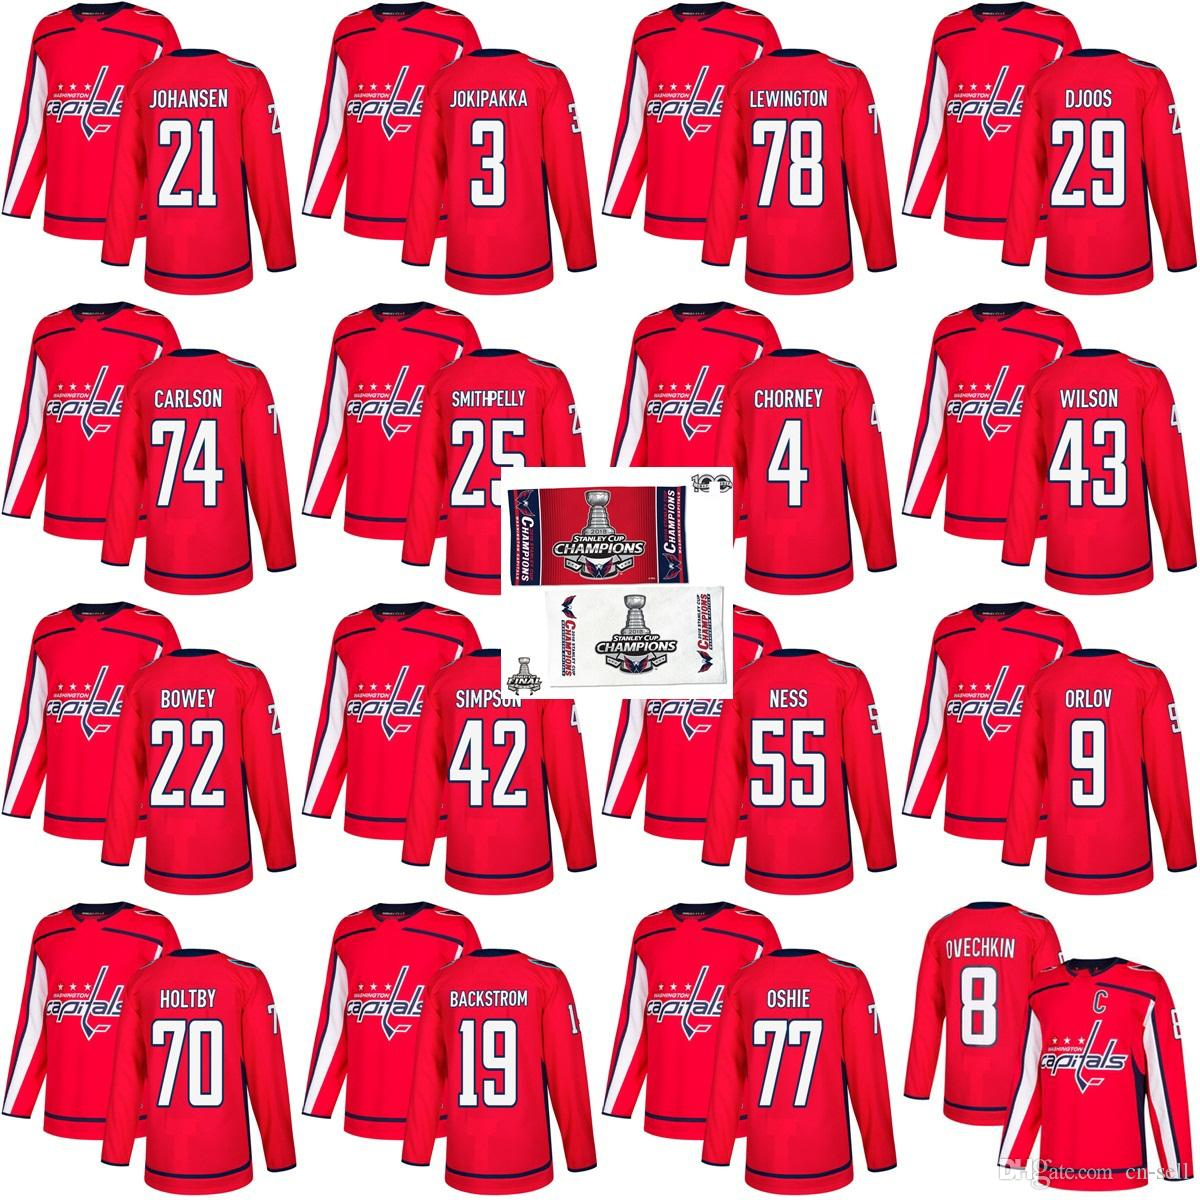 2018 2018 Stanley Cup Final Champion Washington Capitals 77 T.J. Oshie  Nicklas Backstrom 8 Alex Ovechkin Braden Holtby John Carlson Hockey Jersey  From Cn ... 2ce0c1897